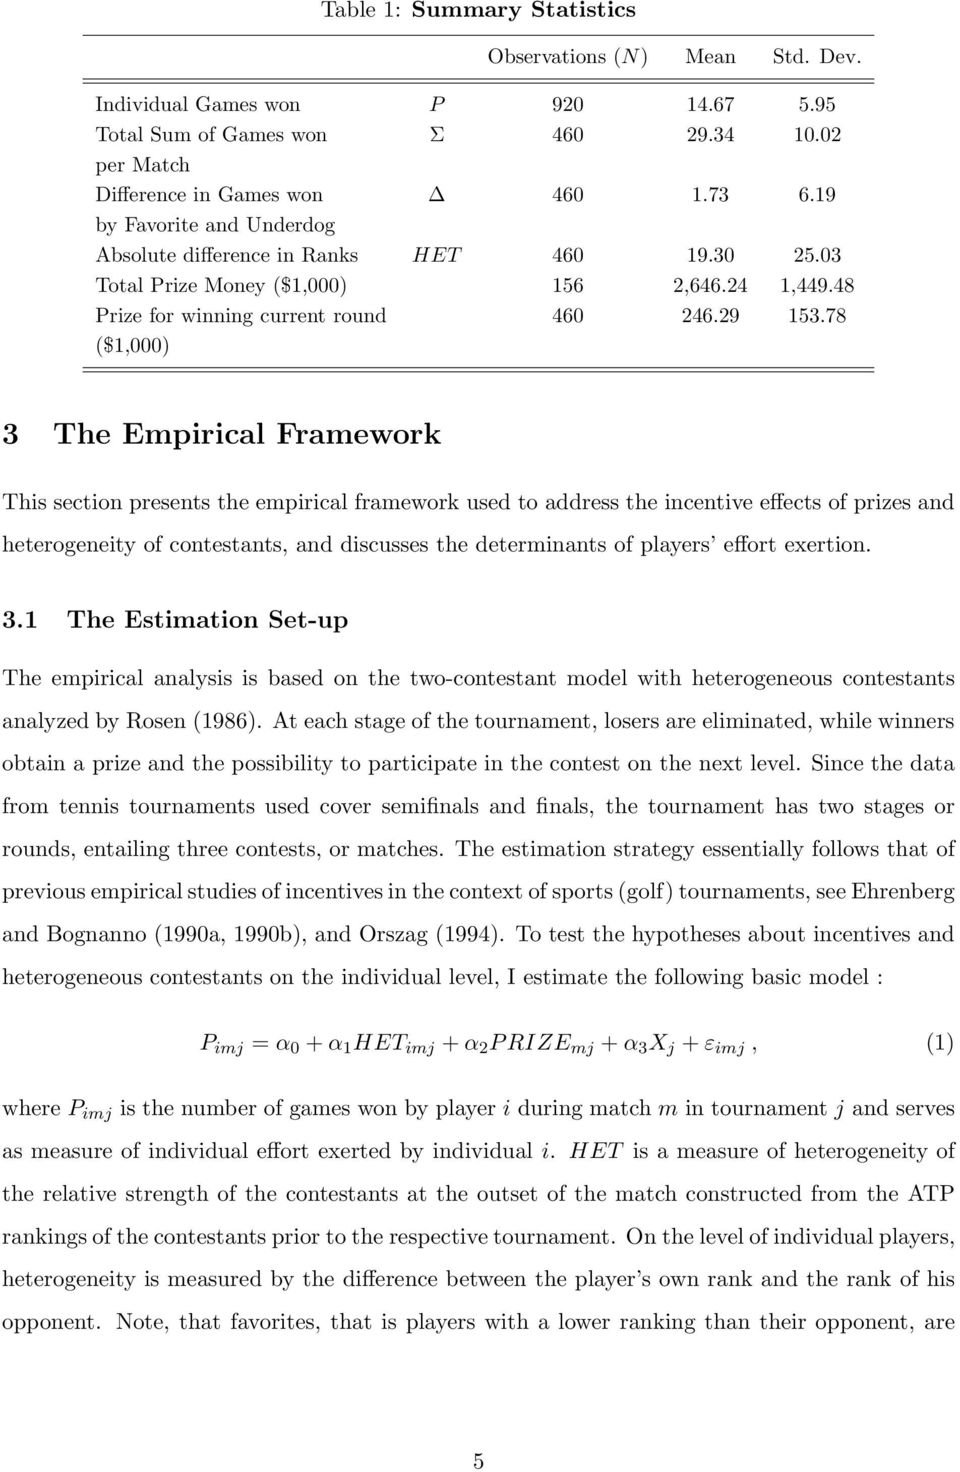 78 ($1,000) 3 The Empirical Framework This section presents the empirical framework used to address the incentive effects of prizes and heterogeneity of contestants, and discusses the determinants of